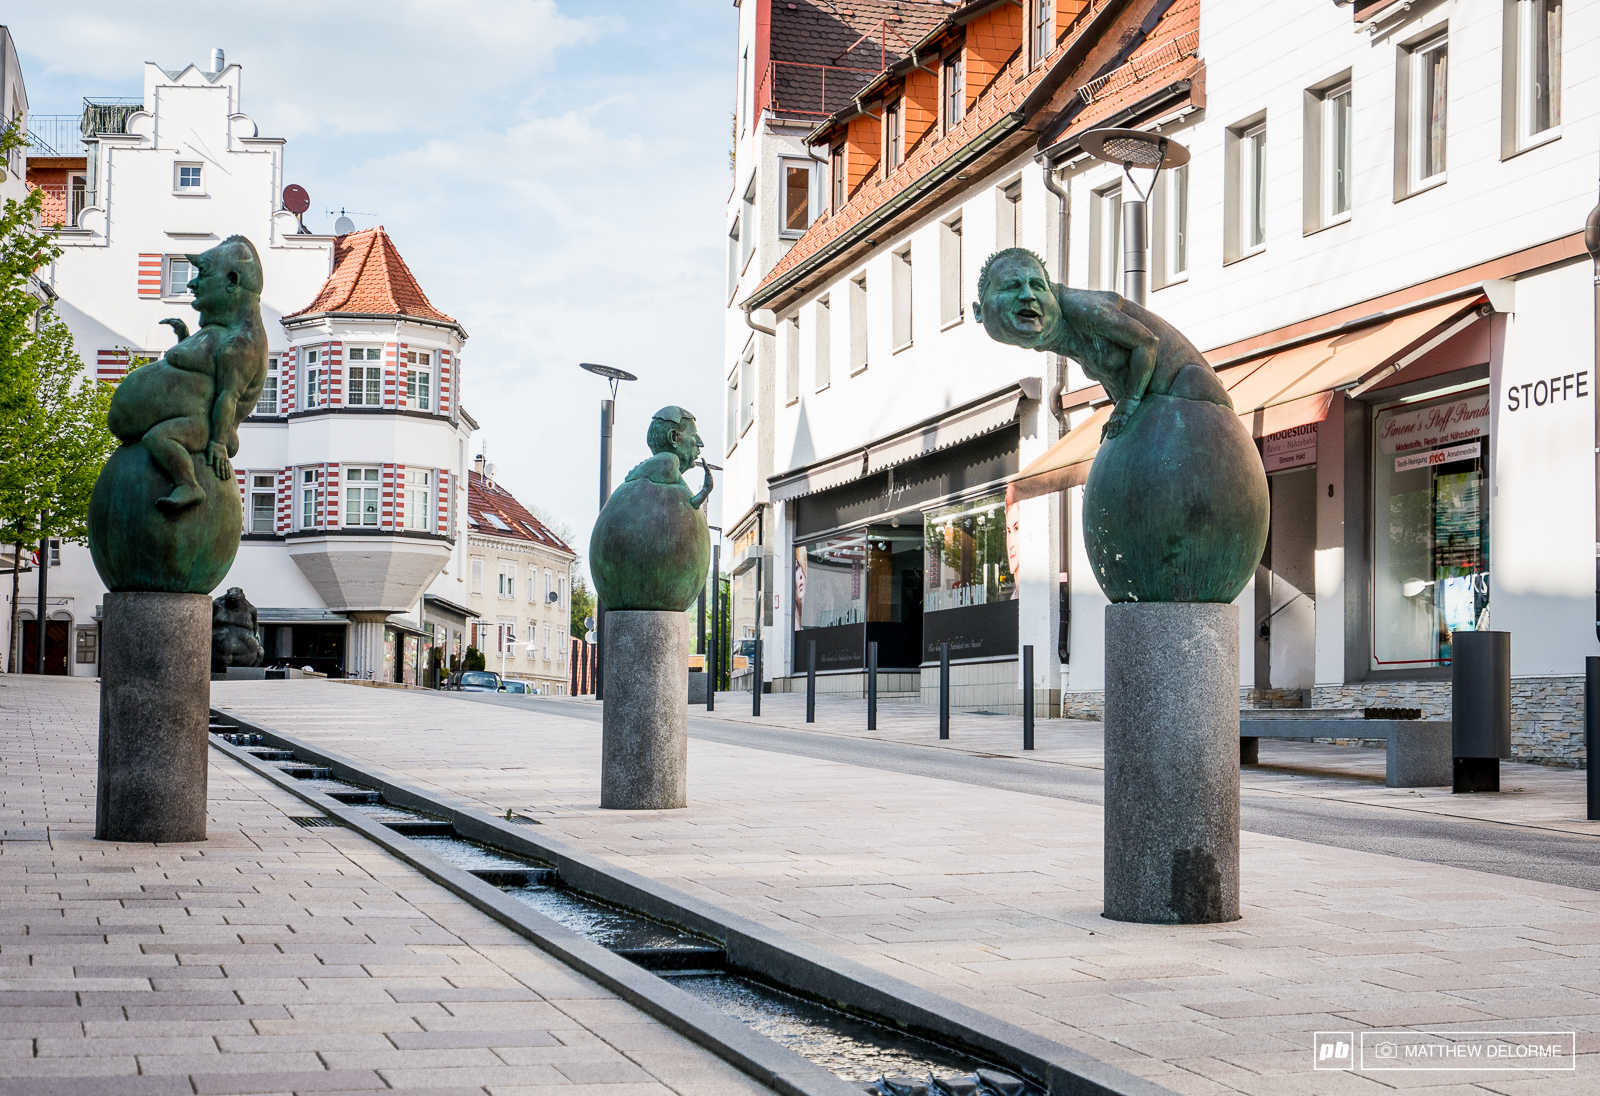 Albstadt has some wonderfully strange art works along it s streets. These are the Baby Men Dinosaur Hatchlings. Not sure on the real name but it close enough for these purposes.